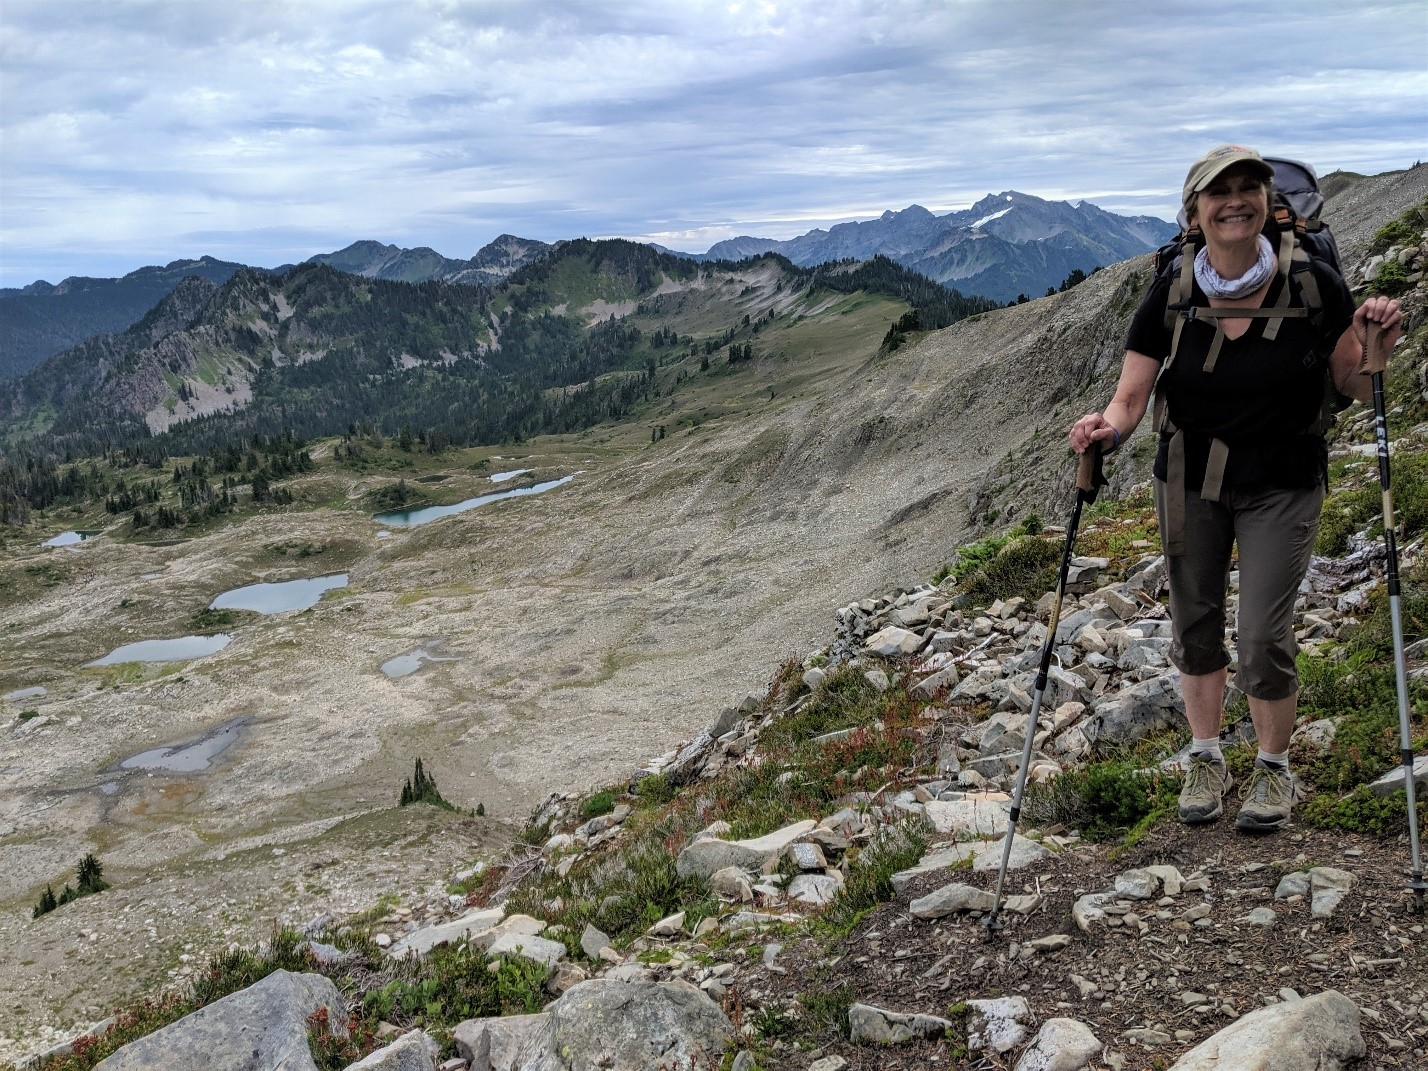 Trisha Wita in her hiking gear with the Seven Lakes Basin in the background